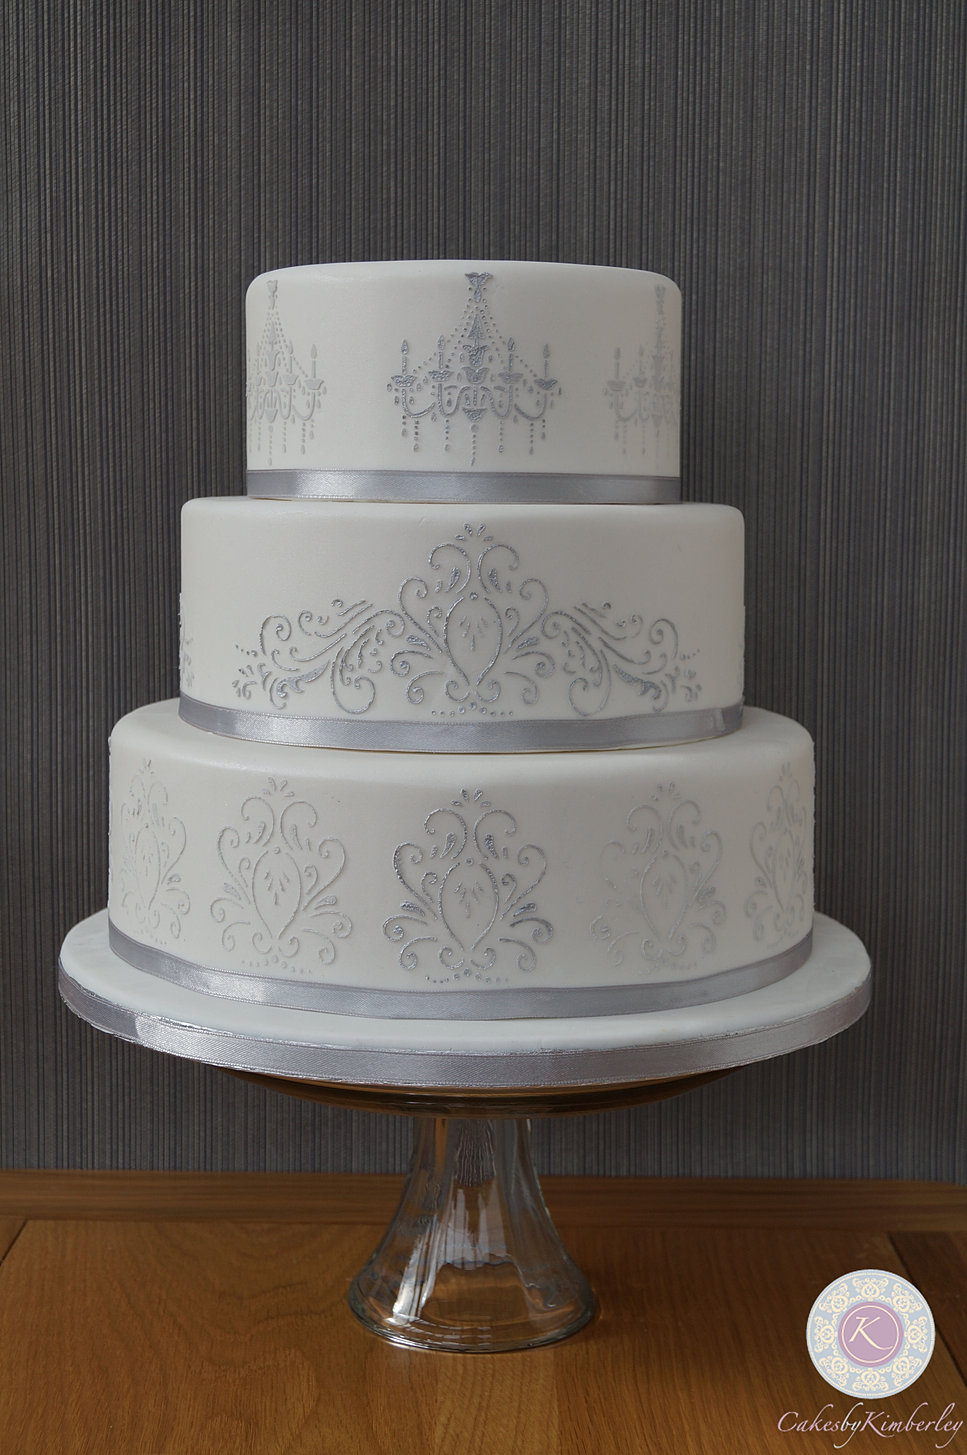 wedding cakes cardiff south wales wedding birthday cakes cardiff south wales 24024